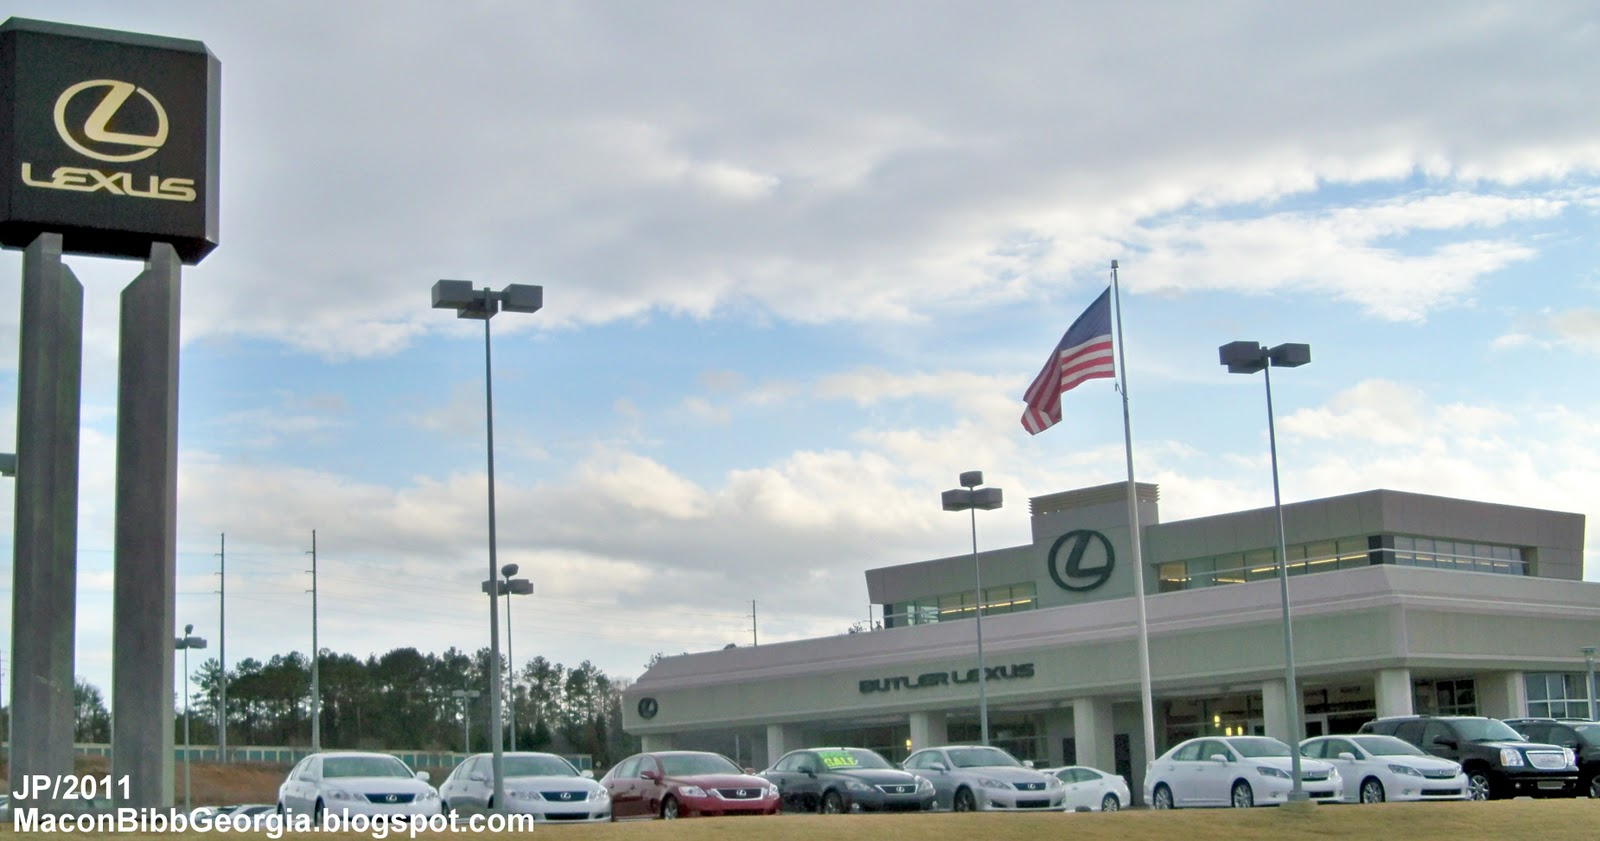 Riverside Ford Macon Ga >> Ford georgia macon riverside